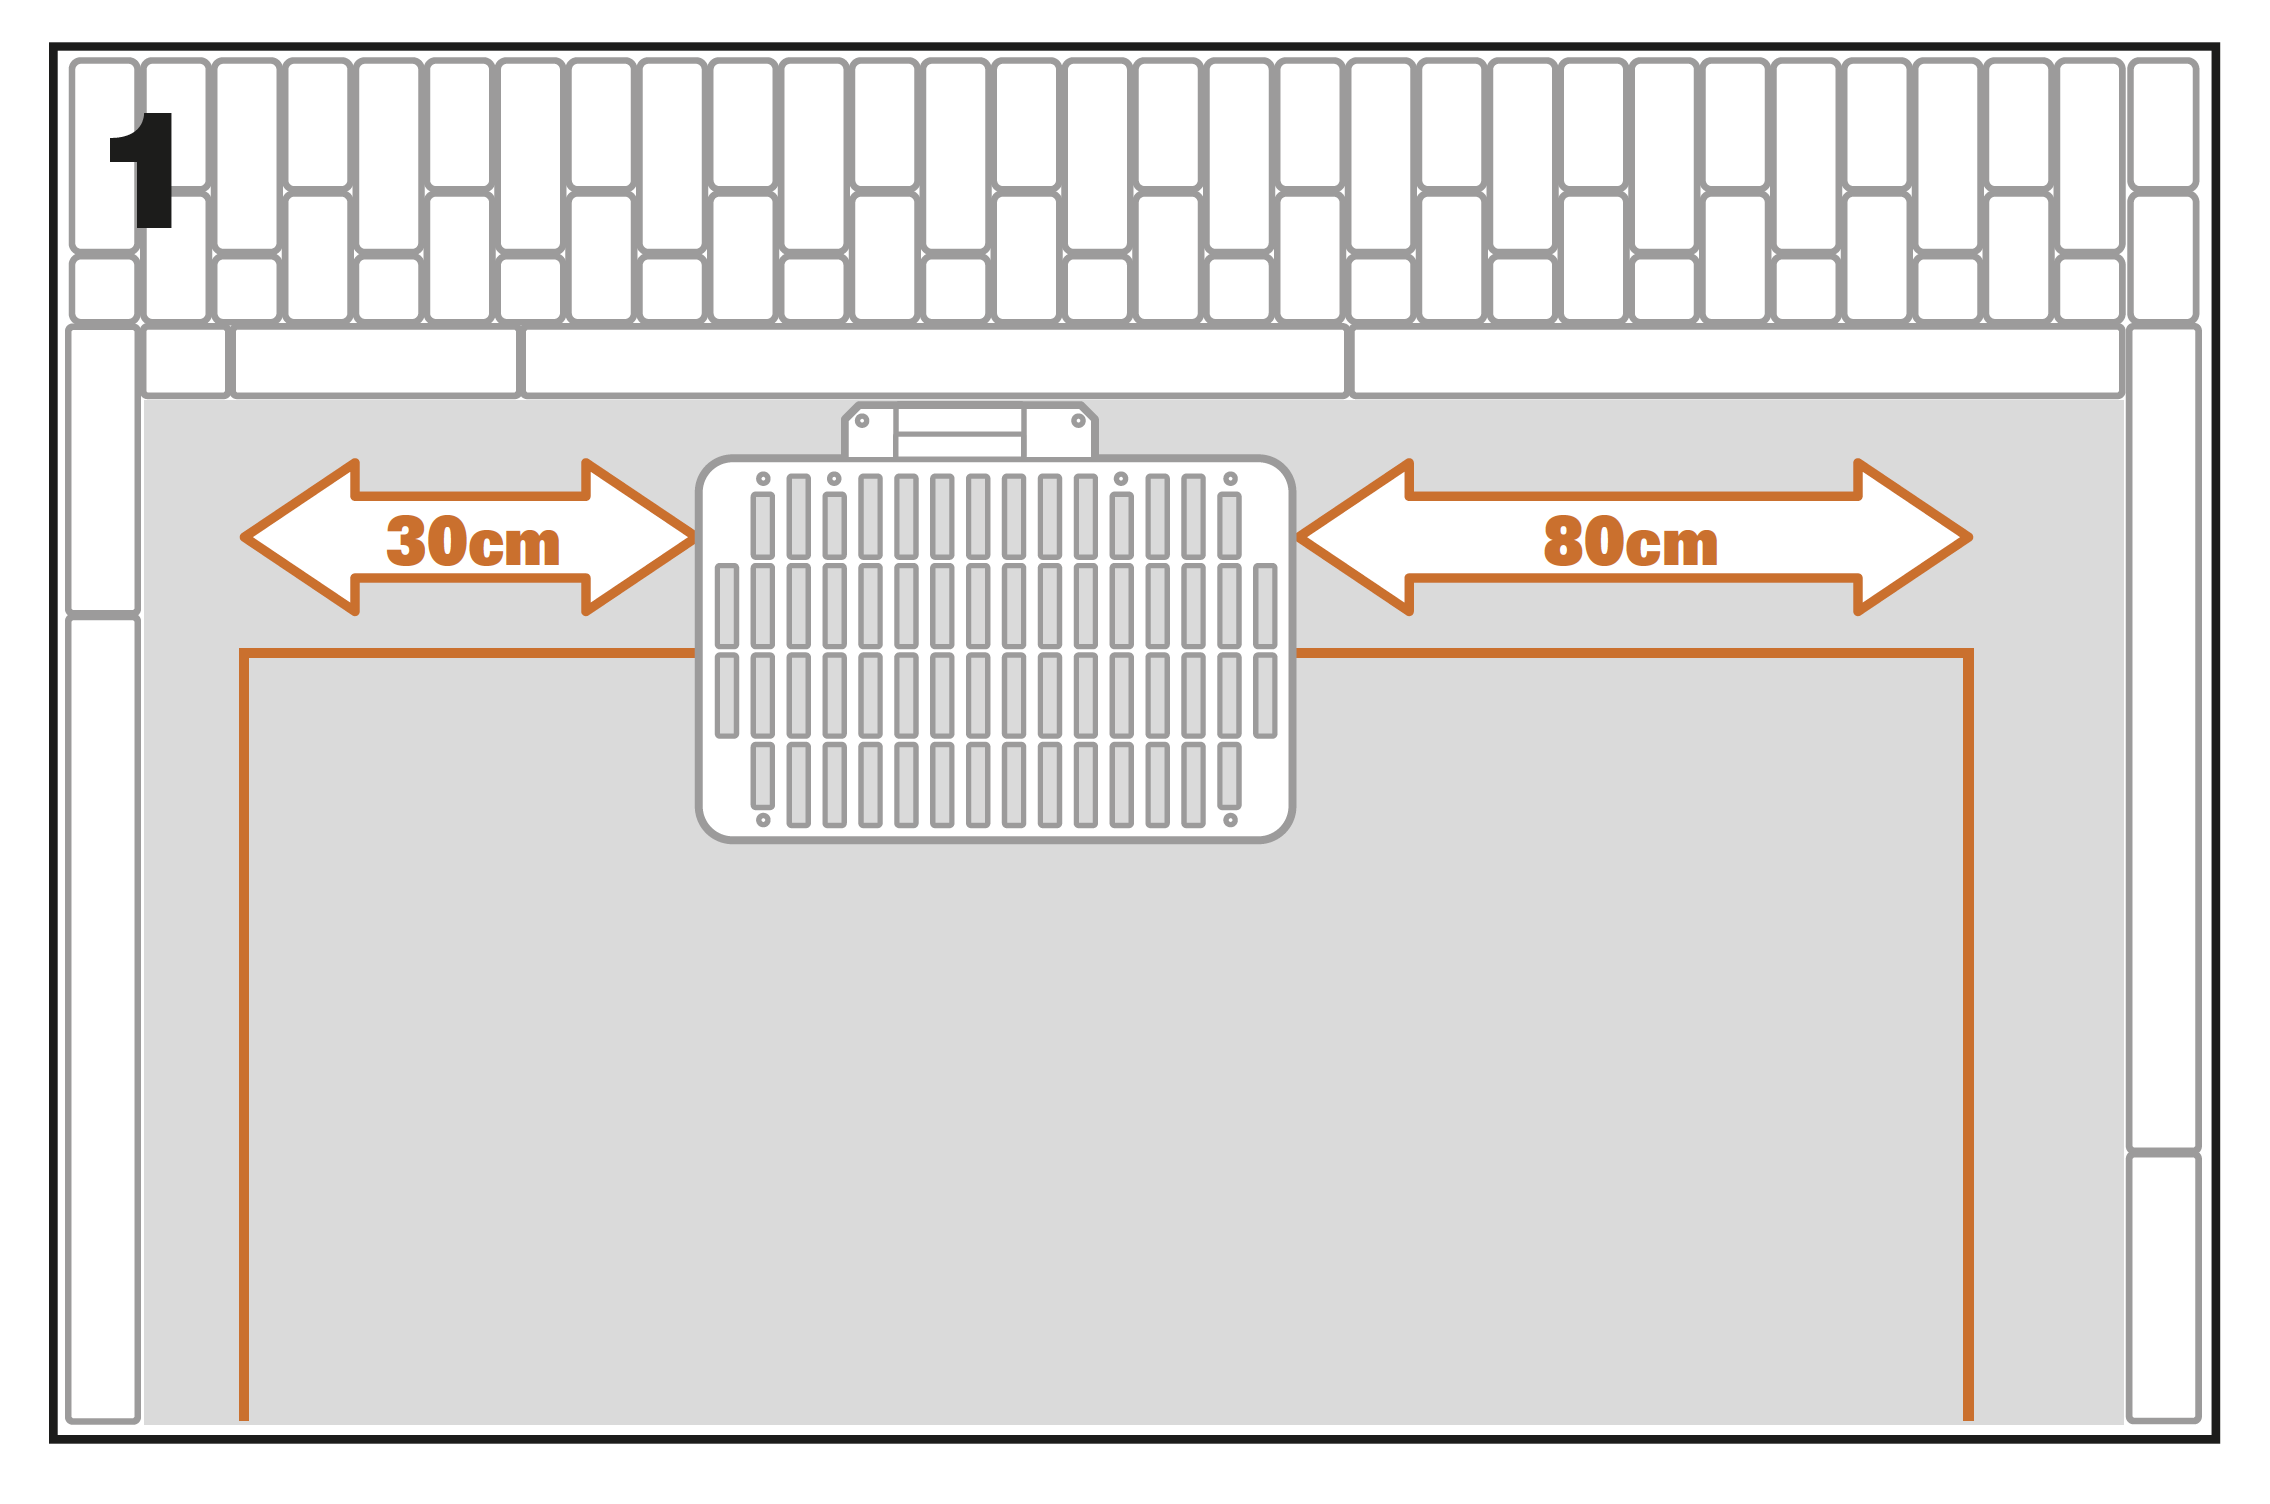 charging base of Landroid S, M, L 19-1